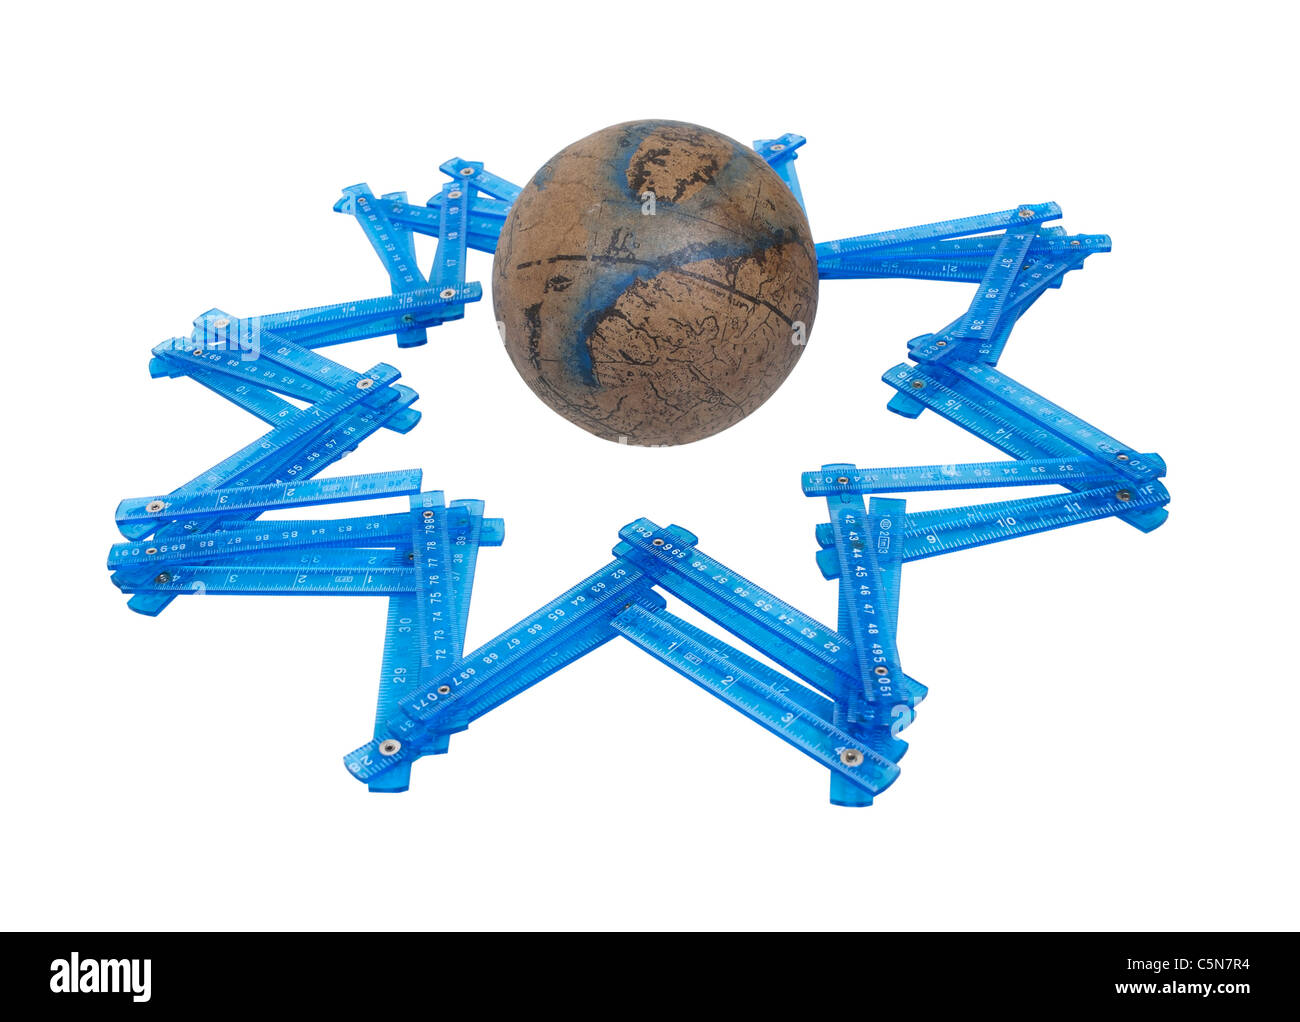 Measuring world stars shown by an old world globe with folding rulers making the shape of a star - path included Stock Photo